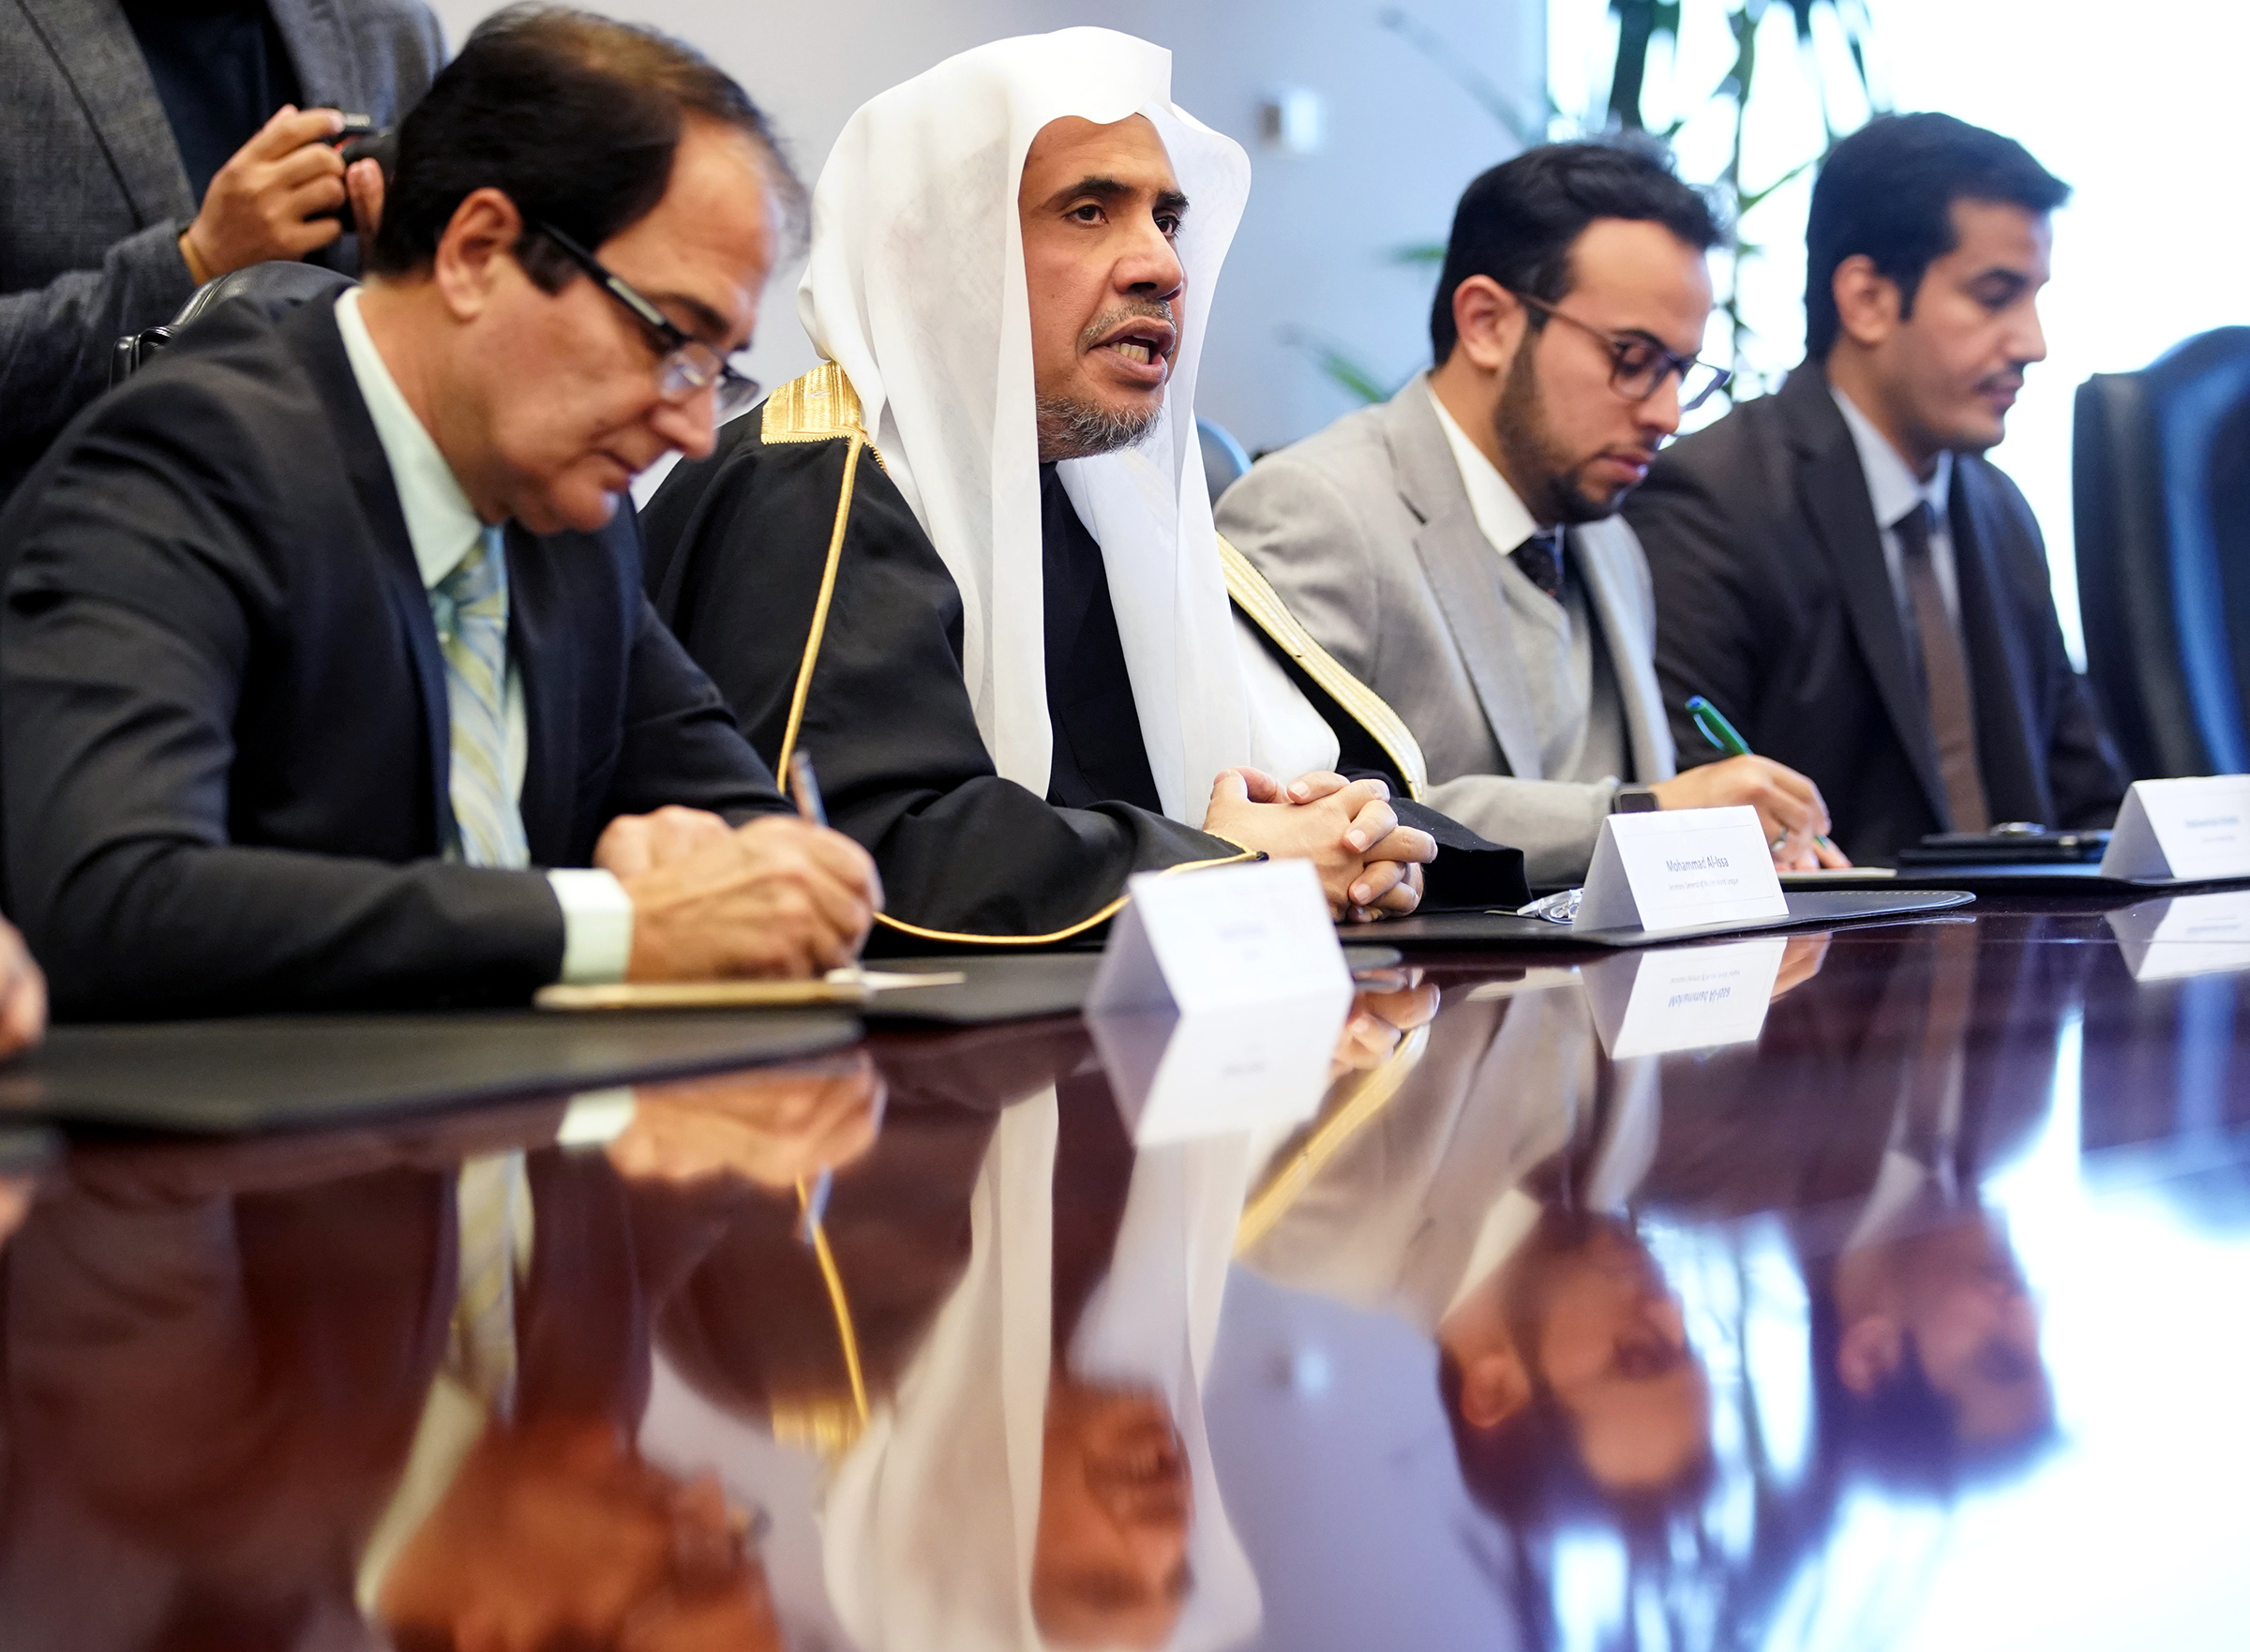 Dr. Mohammad Al-Issa, secretary-general of the World Muslim League, talks in a Deseret News editorial board meeting at the Triad Center in Salt Lake City on Monday, Nov. 4, 2019.